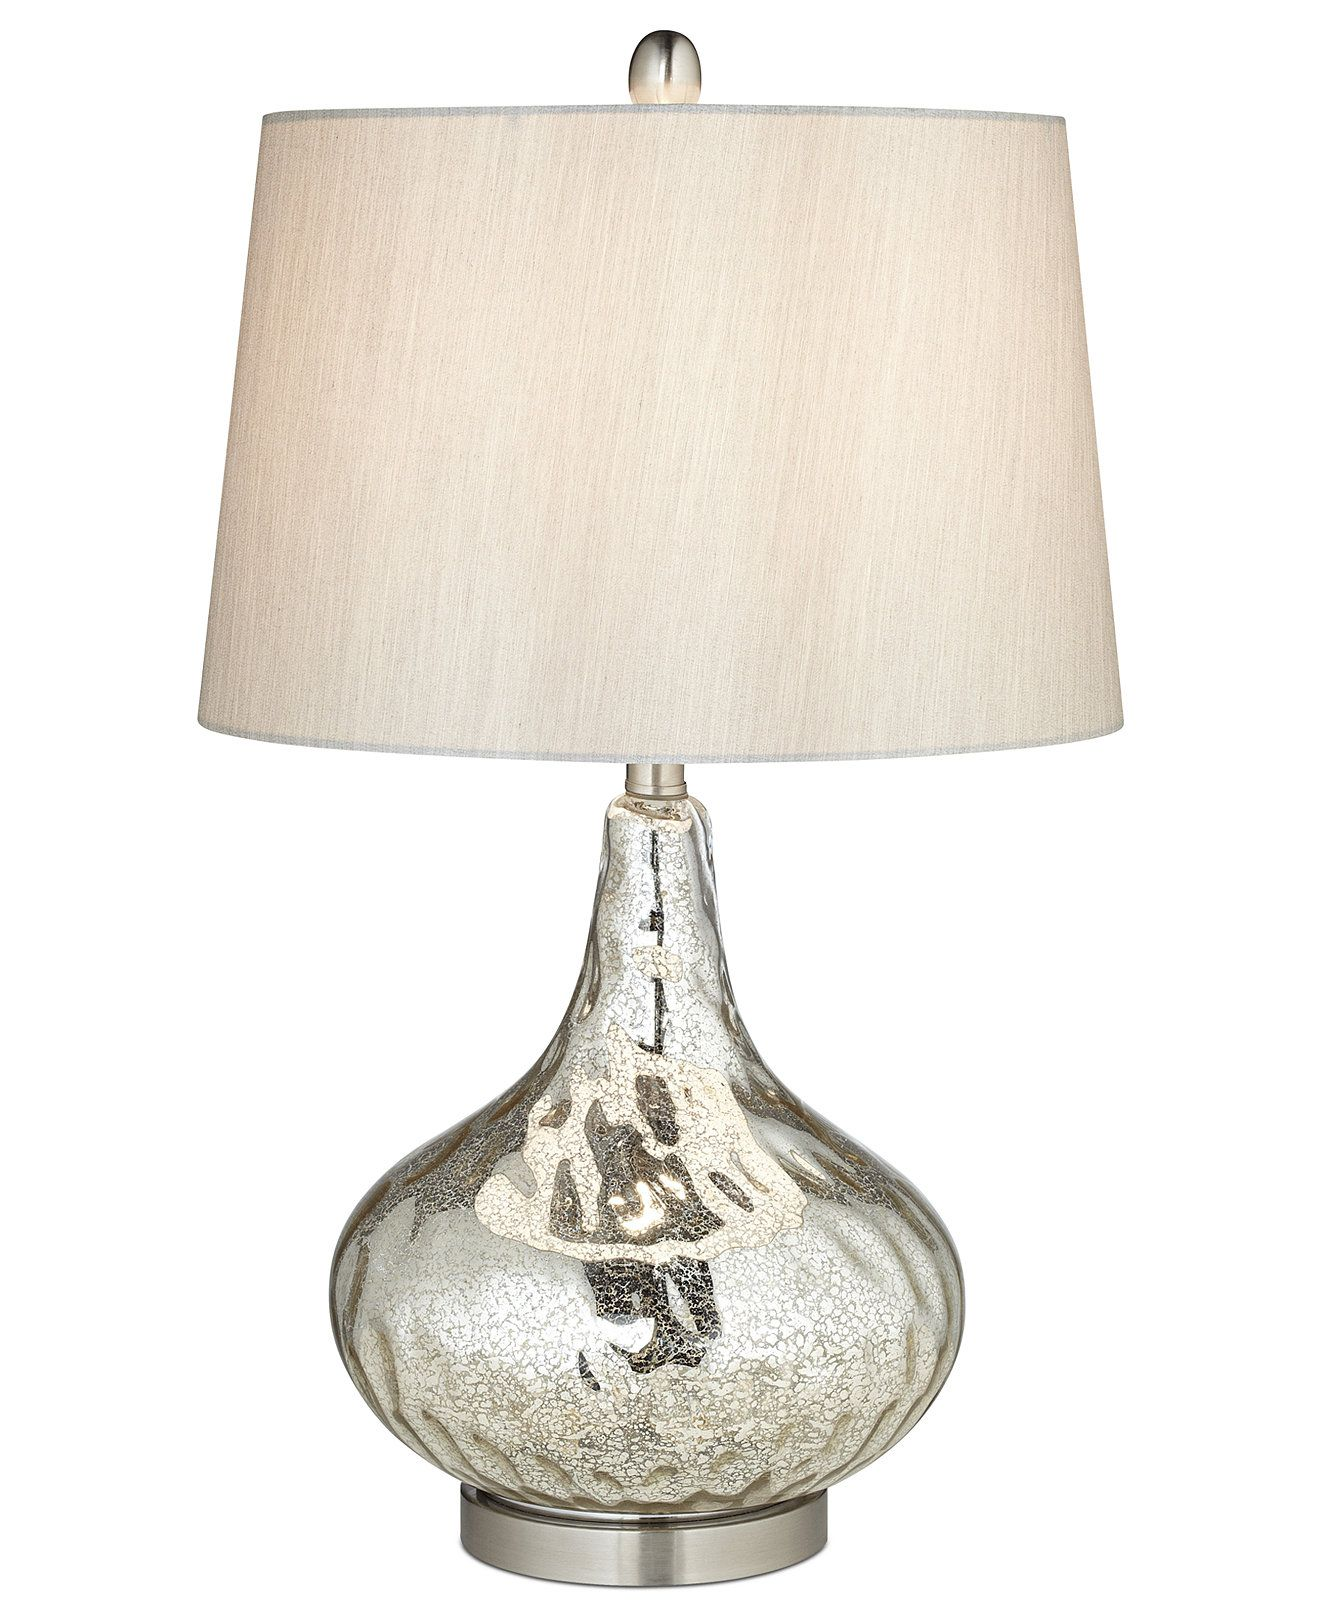 Pacific Coast Mercuro Glass Table Lamp - Lighting & Lamps - For The Home - Macy's